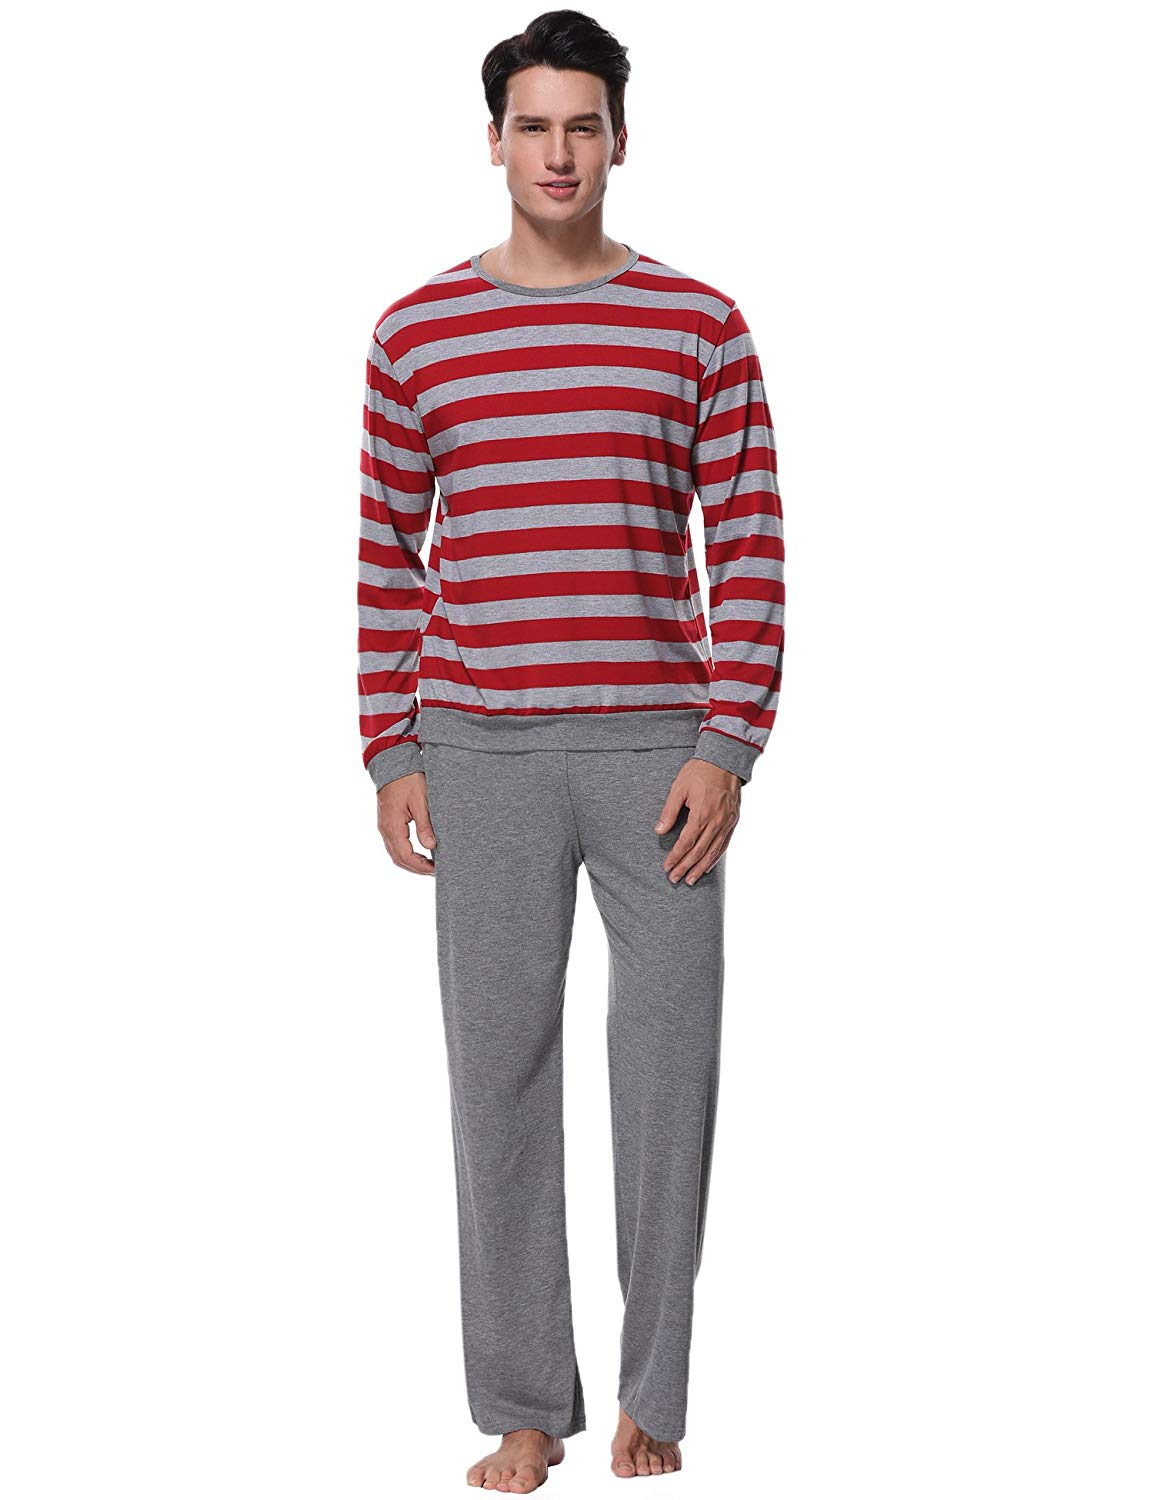 1d776c0619 Get Quotations · Aibrou Mens Cotton Pajama Long Sleeve Striped Top and  Bottom Pajama Set